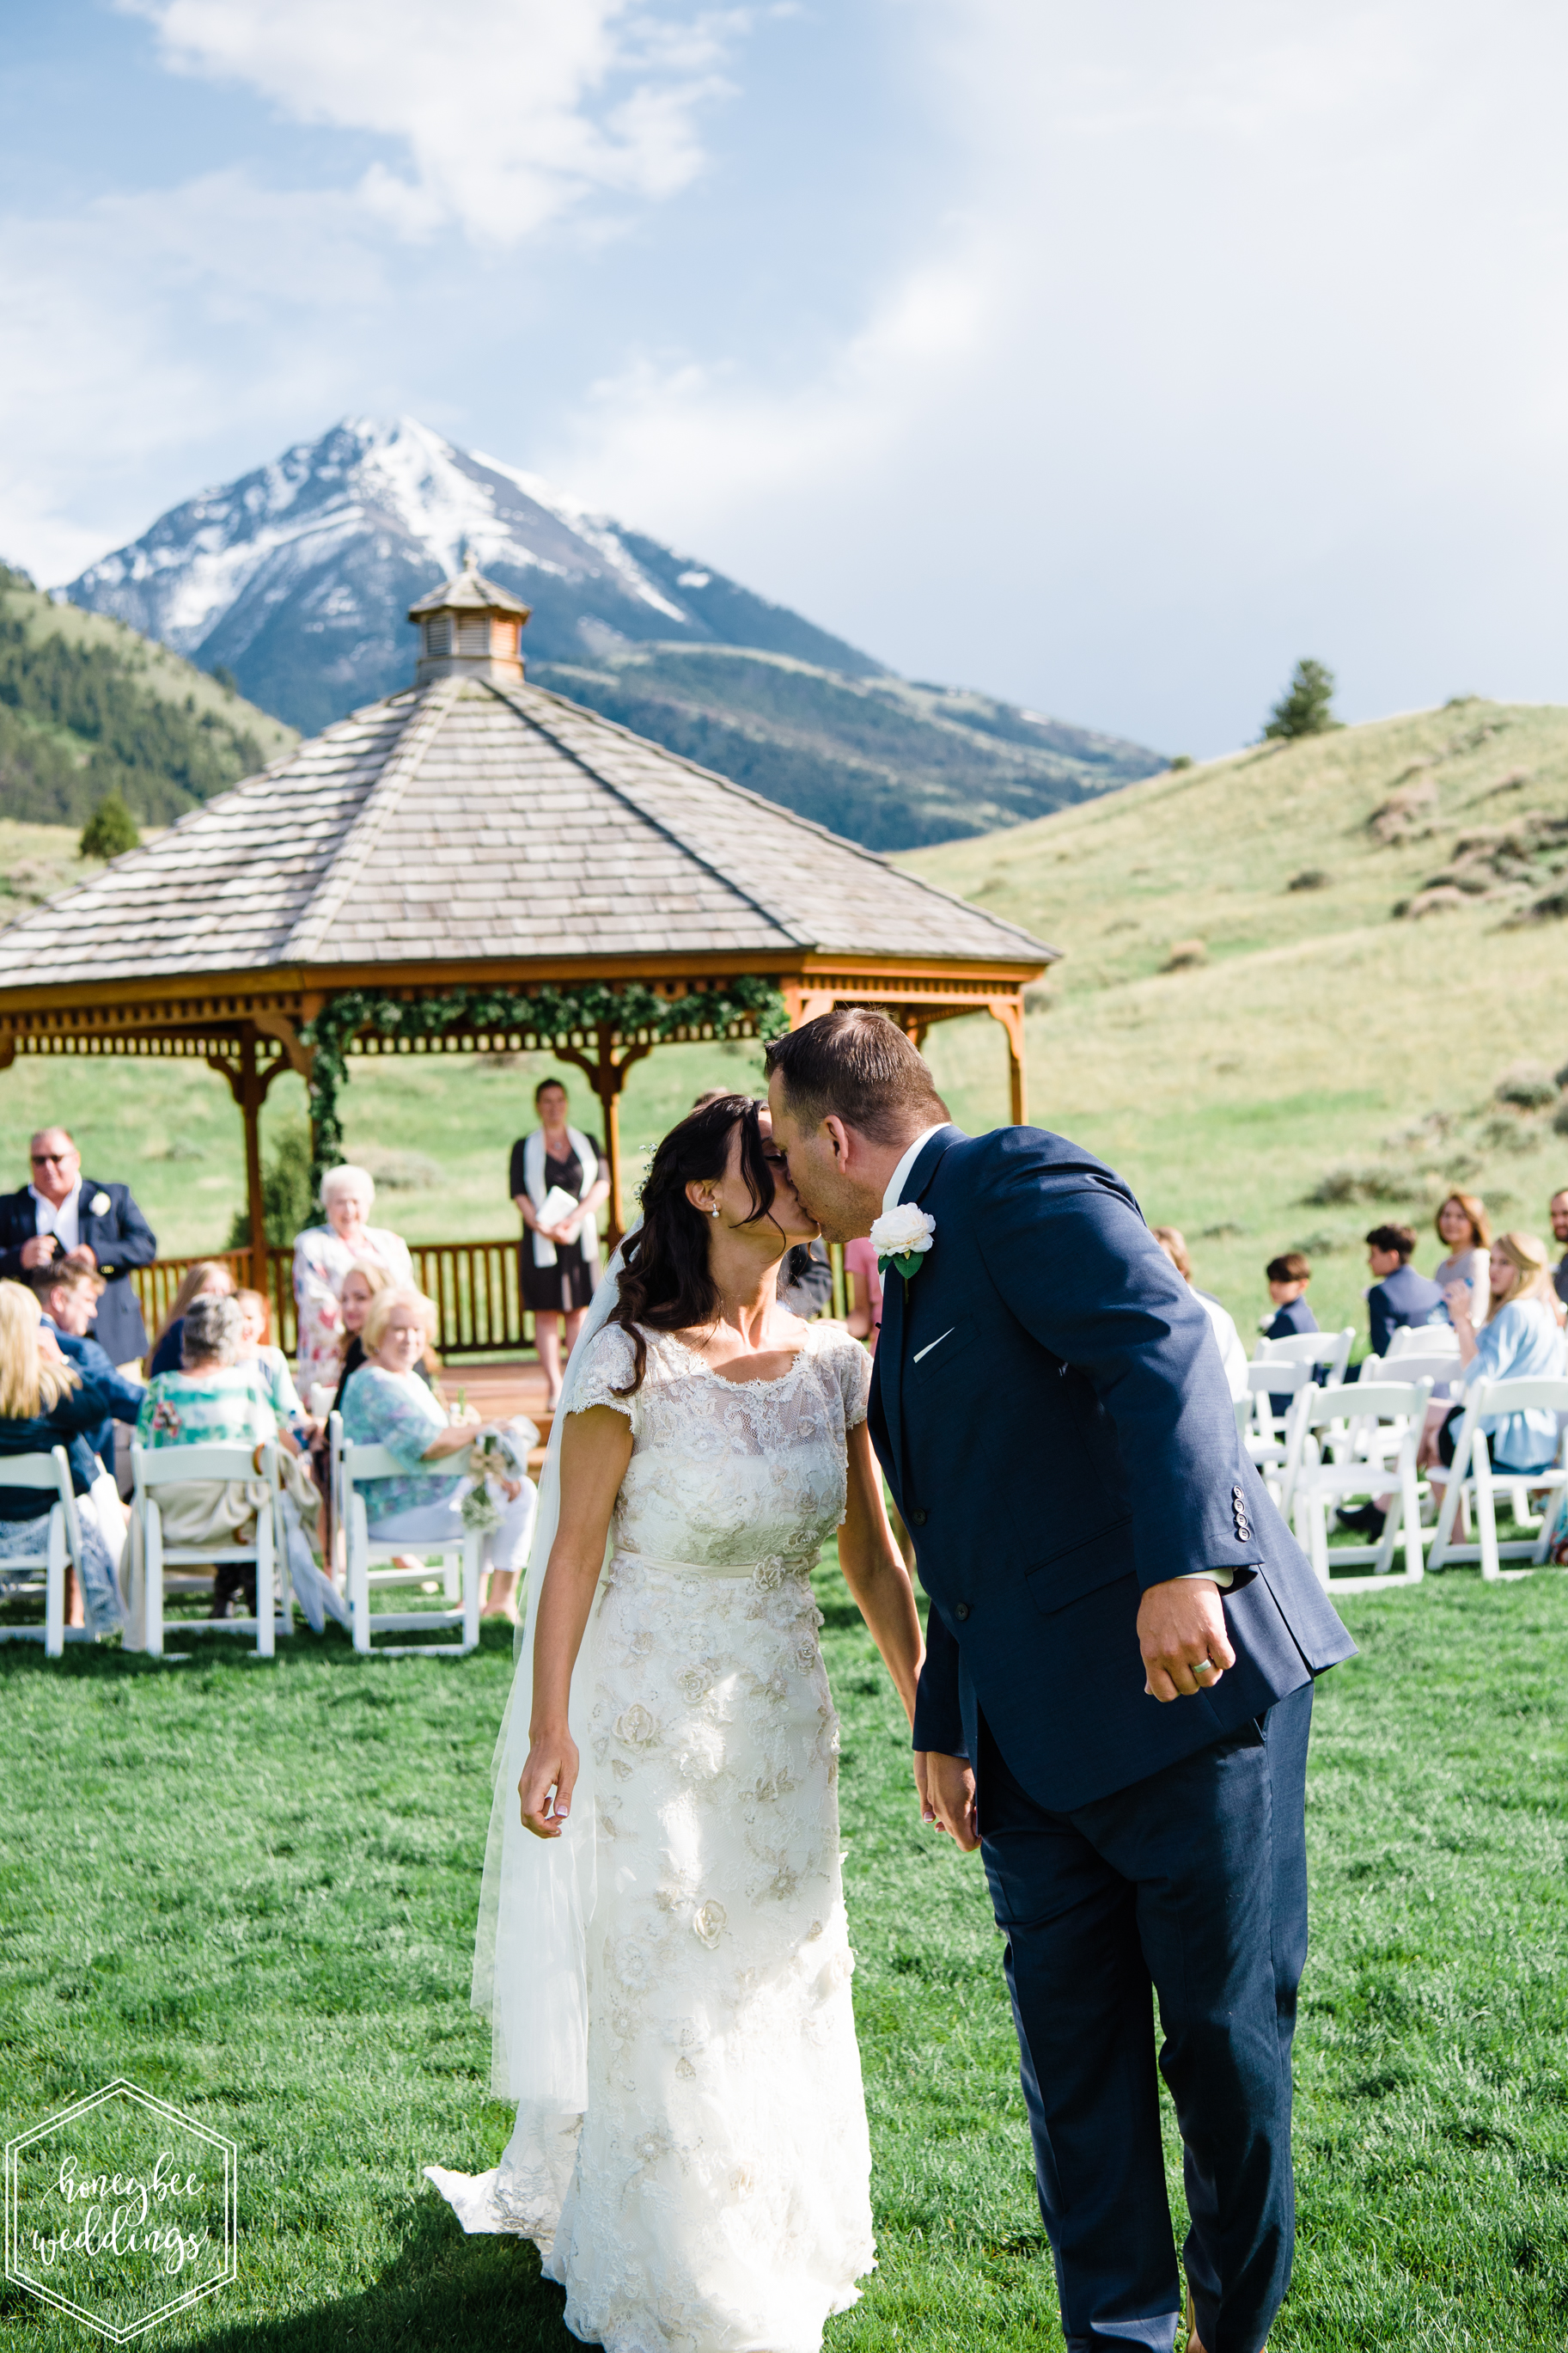 012Montana wedding photographer videographer_Chico hot springs wedding_Honeybee Weddings_Claudia & Bill_June 03, 2019-193.jpg